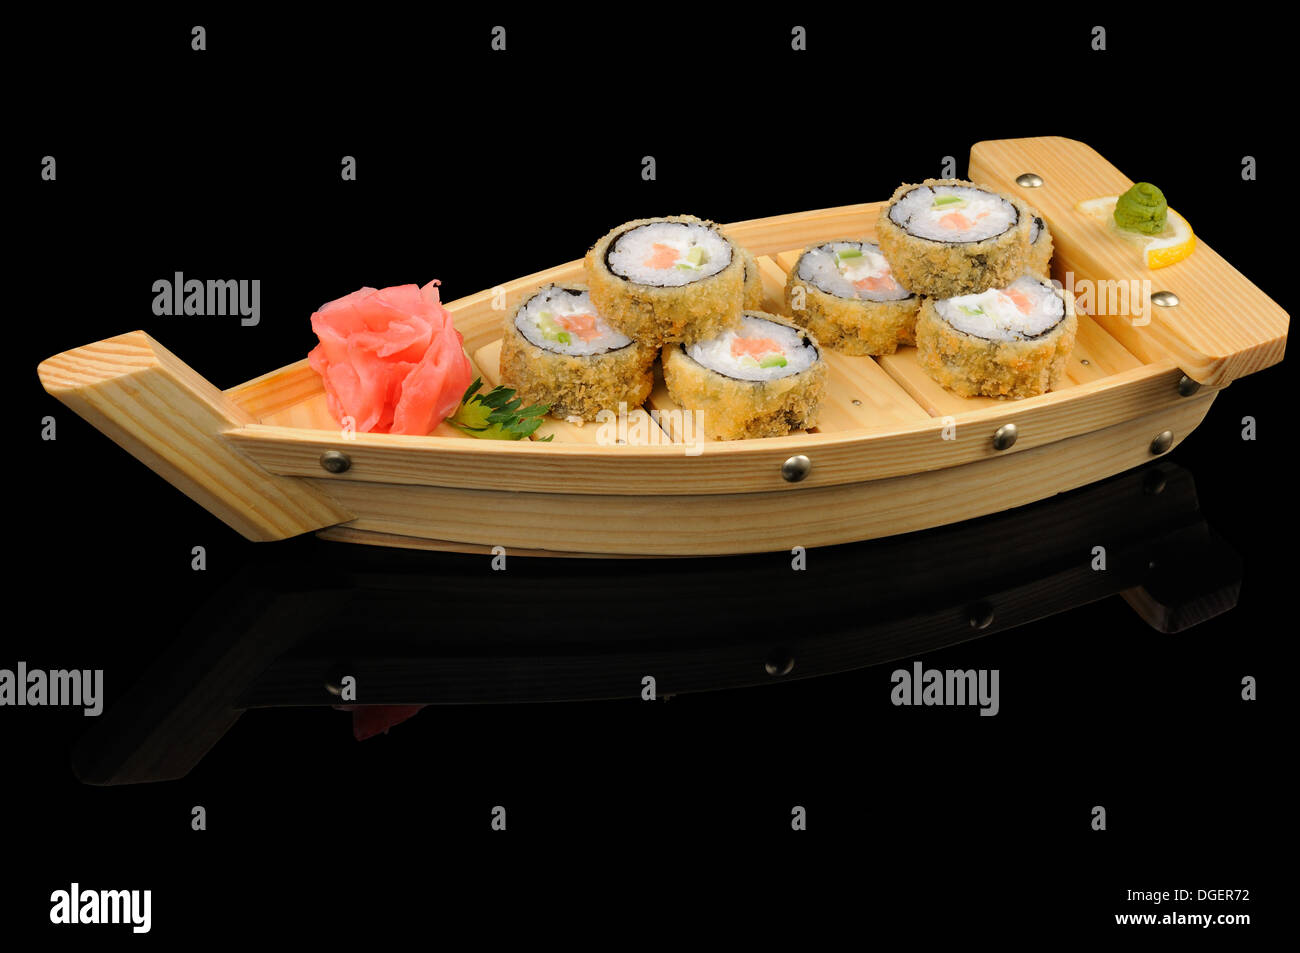 fish snack boat stock photos fish snack boat stock images alamy. Black Bedroom Furniture Sets. Home Design Ideas